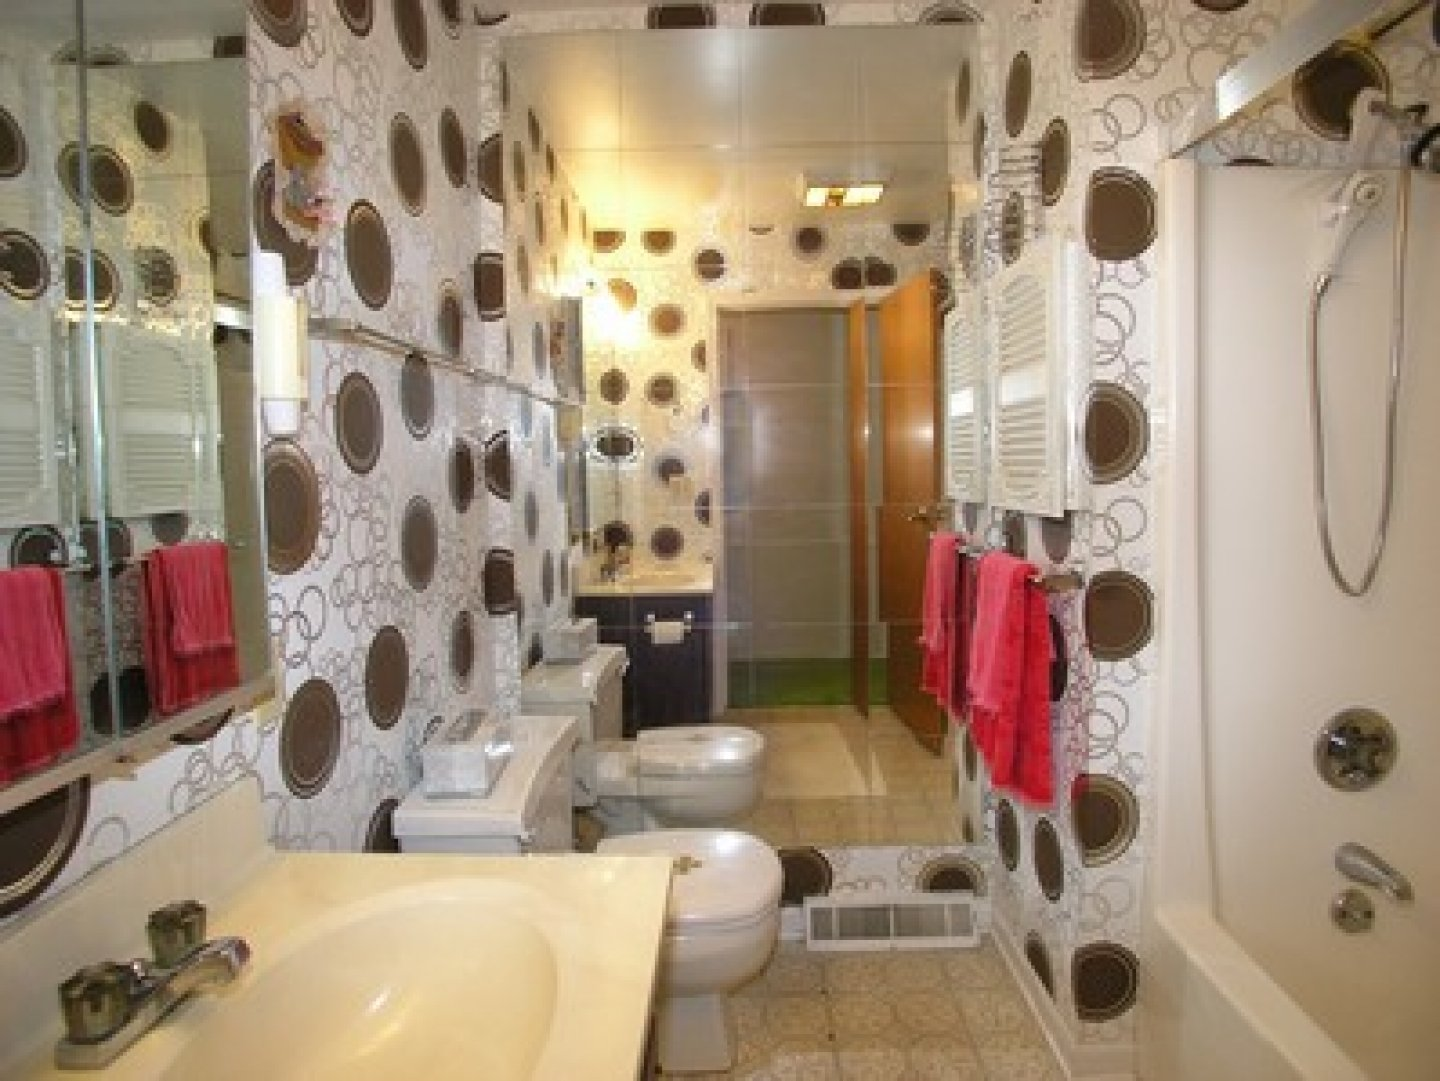 wallpaper designs for bathrooms 2012 - photo #43